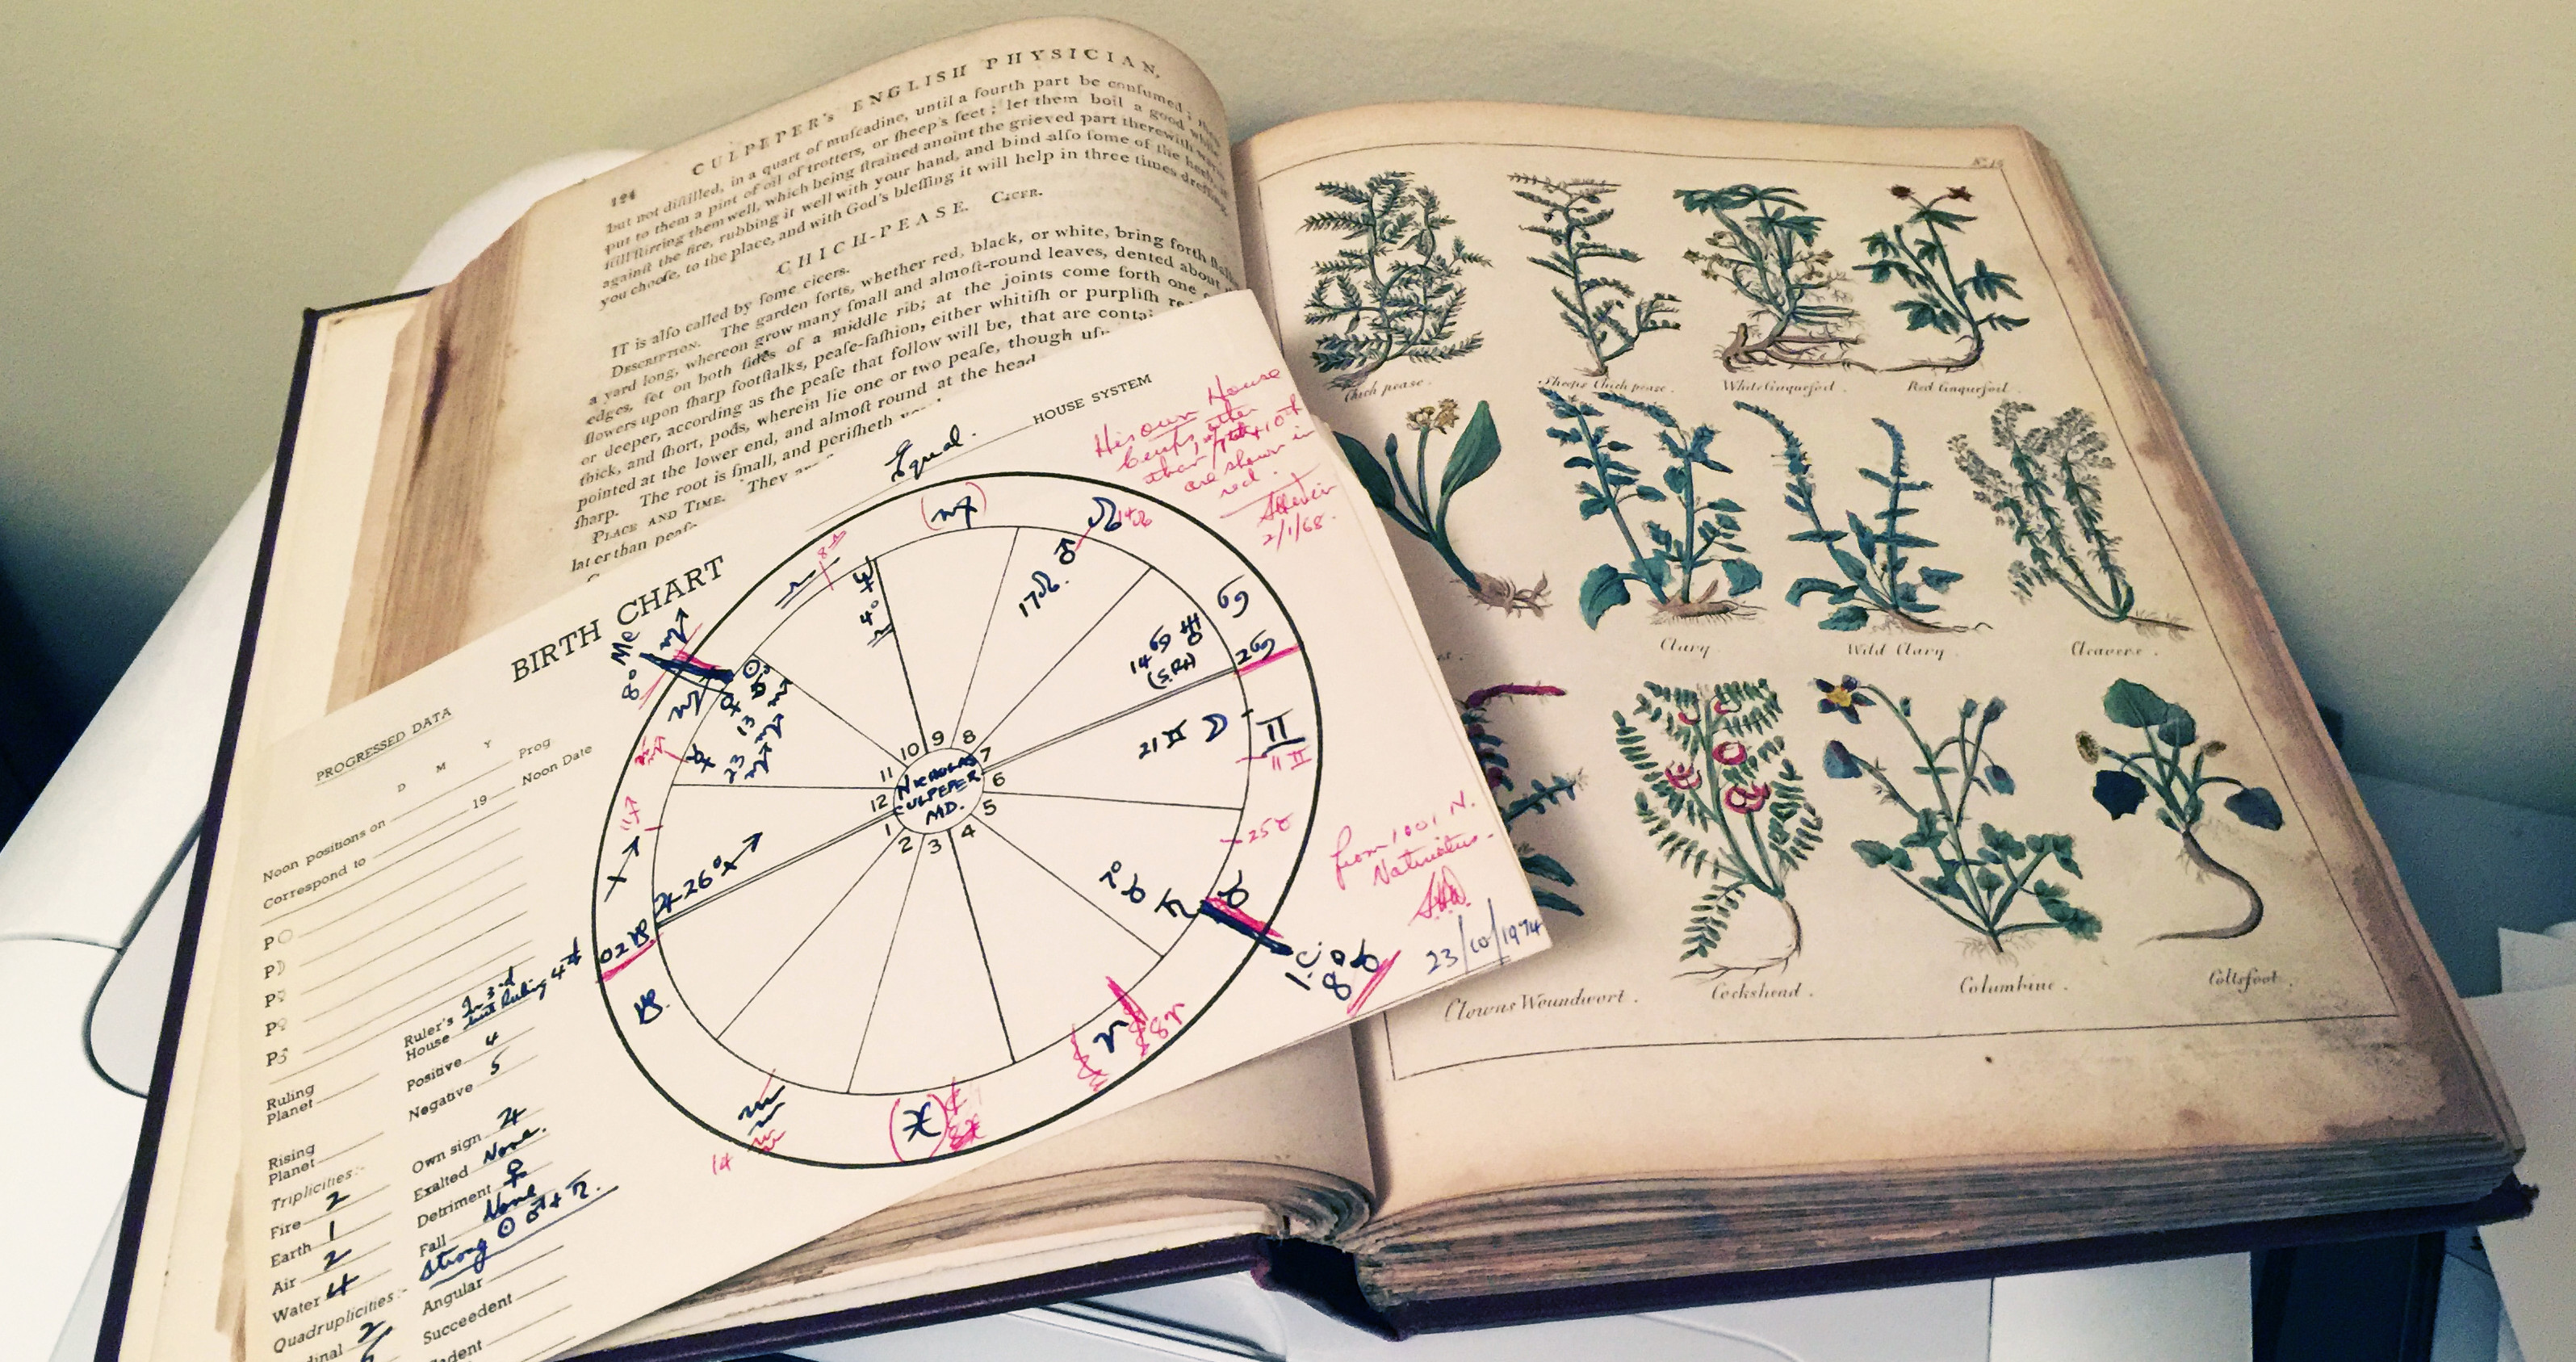 Culpeper's Birth Chart and a 17th century copy of his 'Herbal' ~ a book that is still in print today!